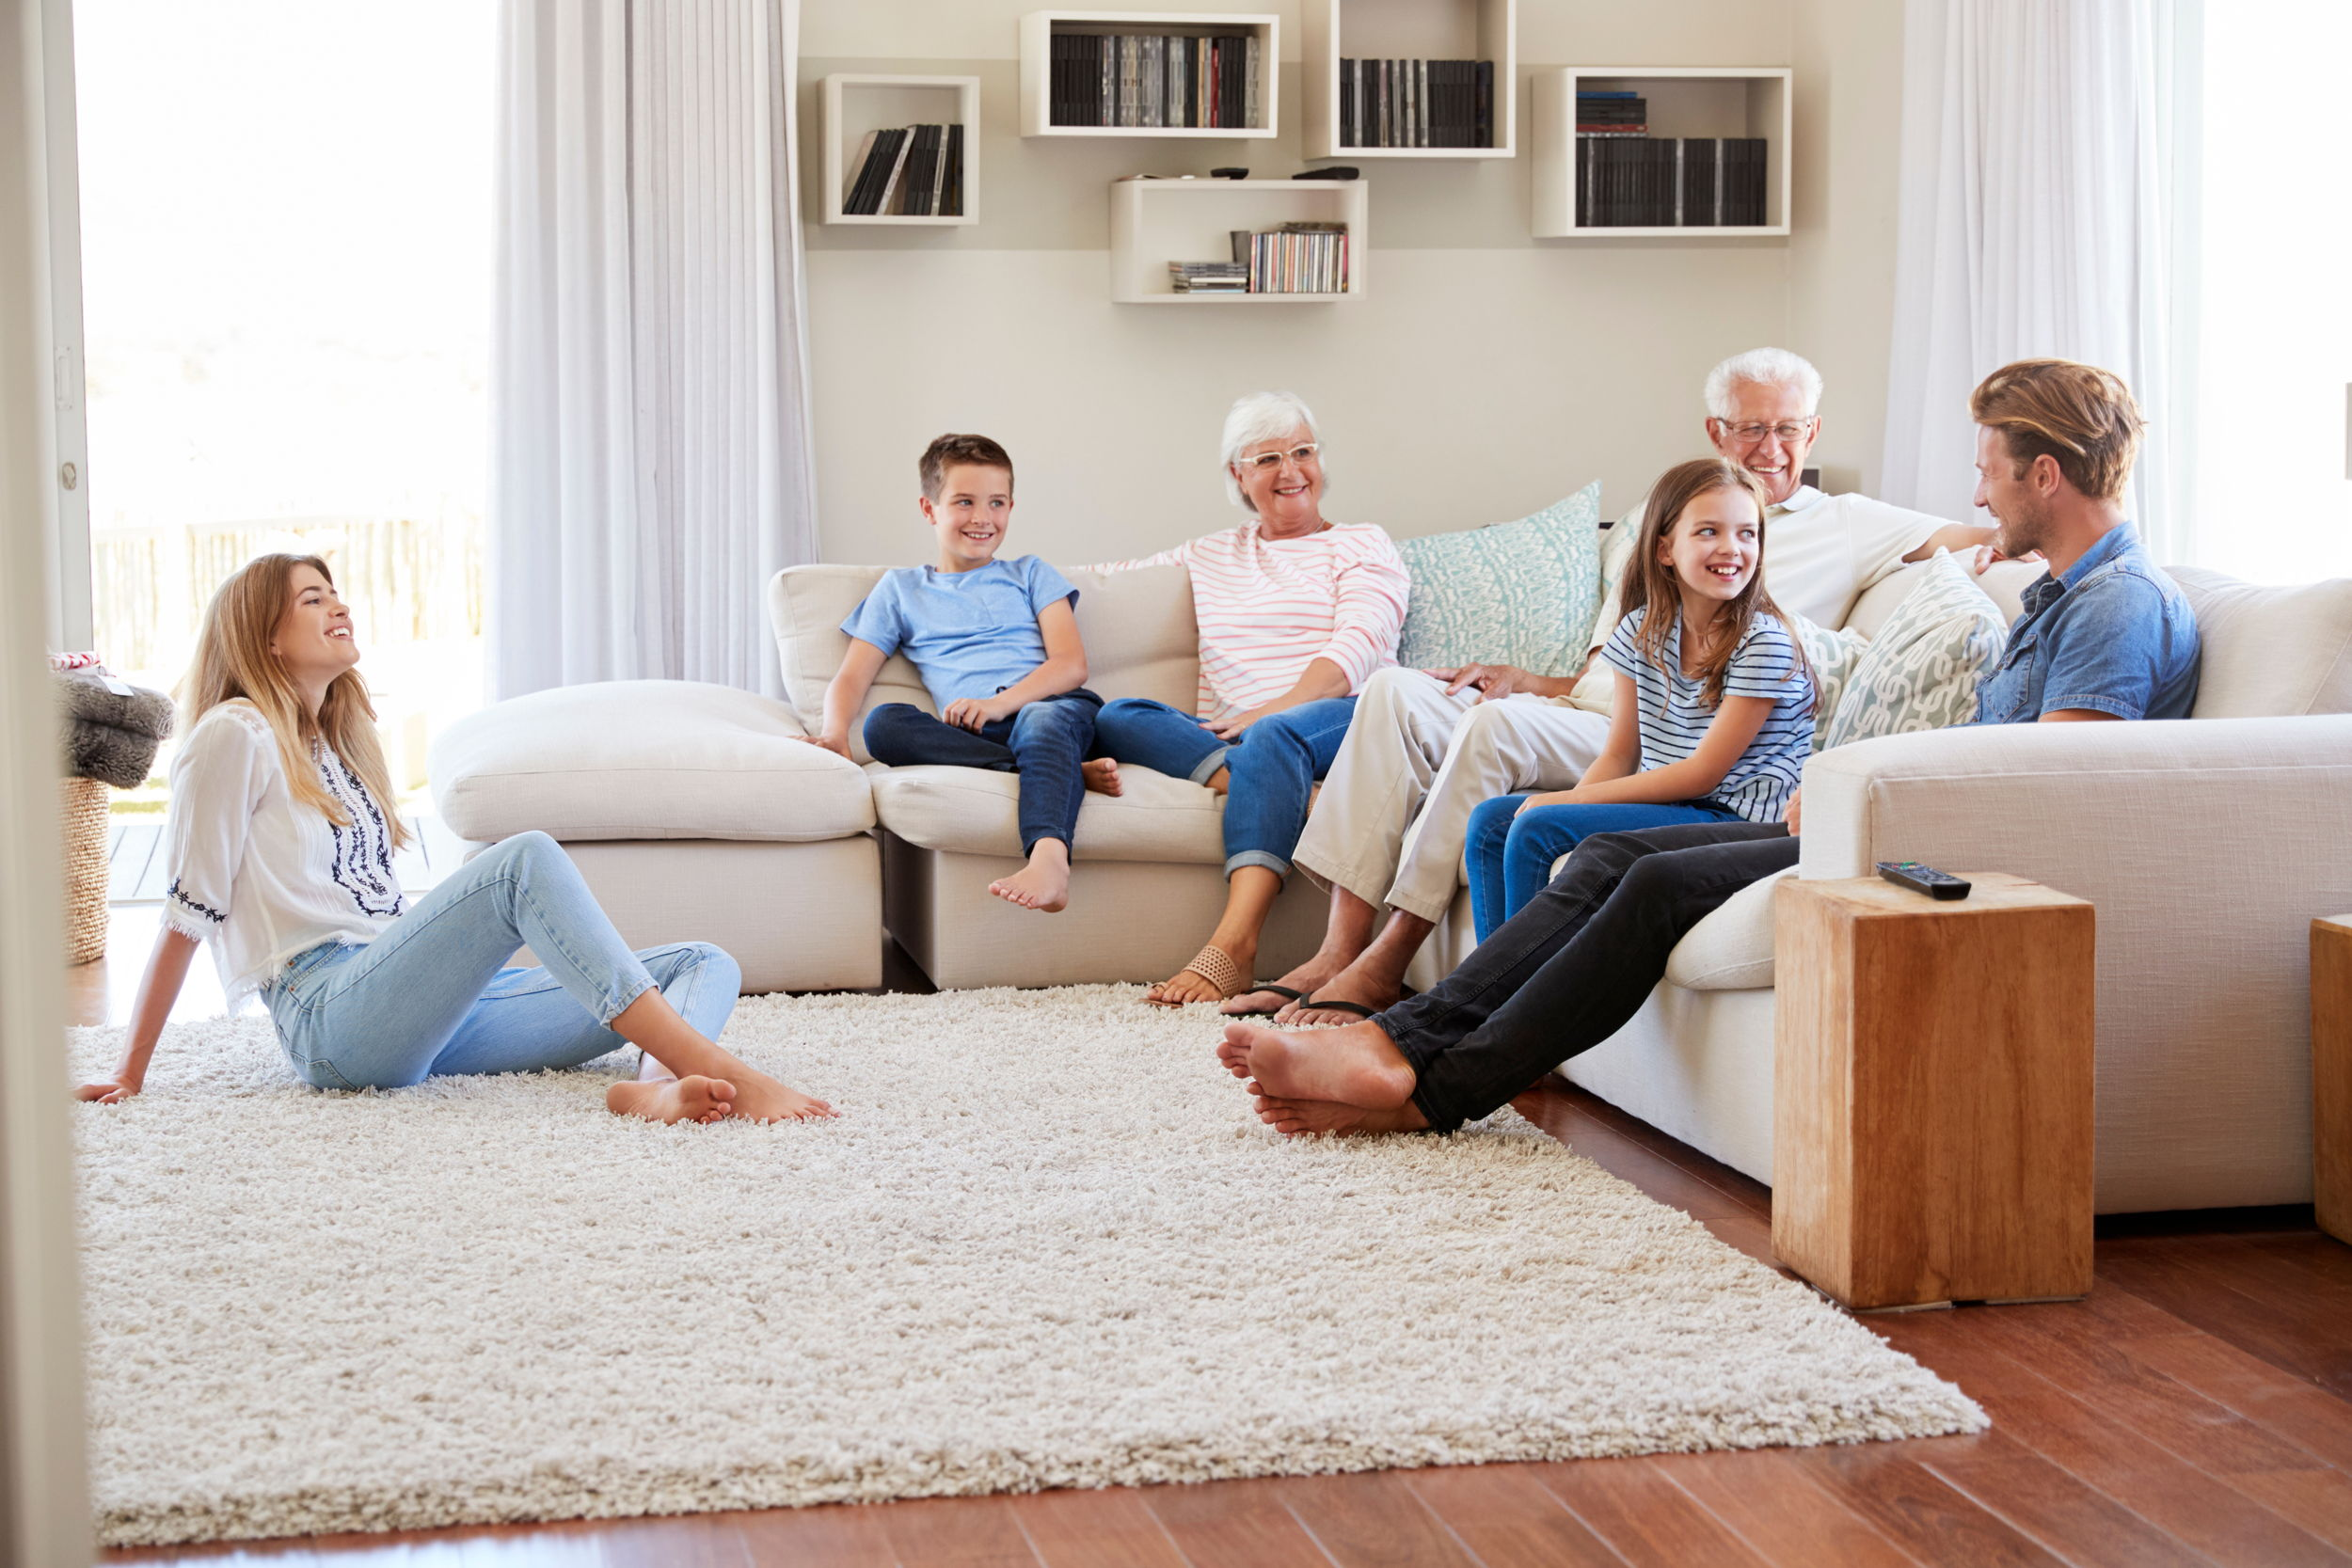 Canva - Family Relaxing on Sofa at Home